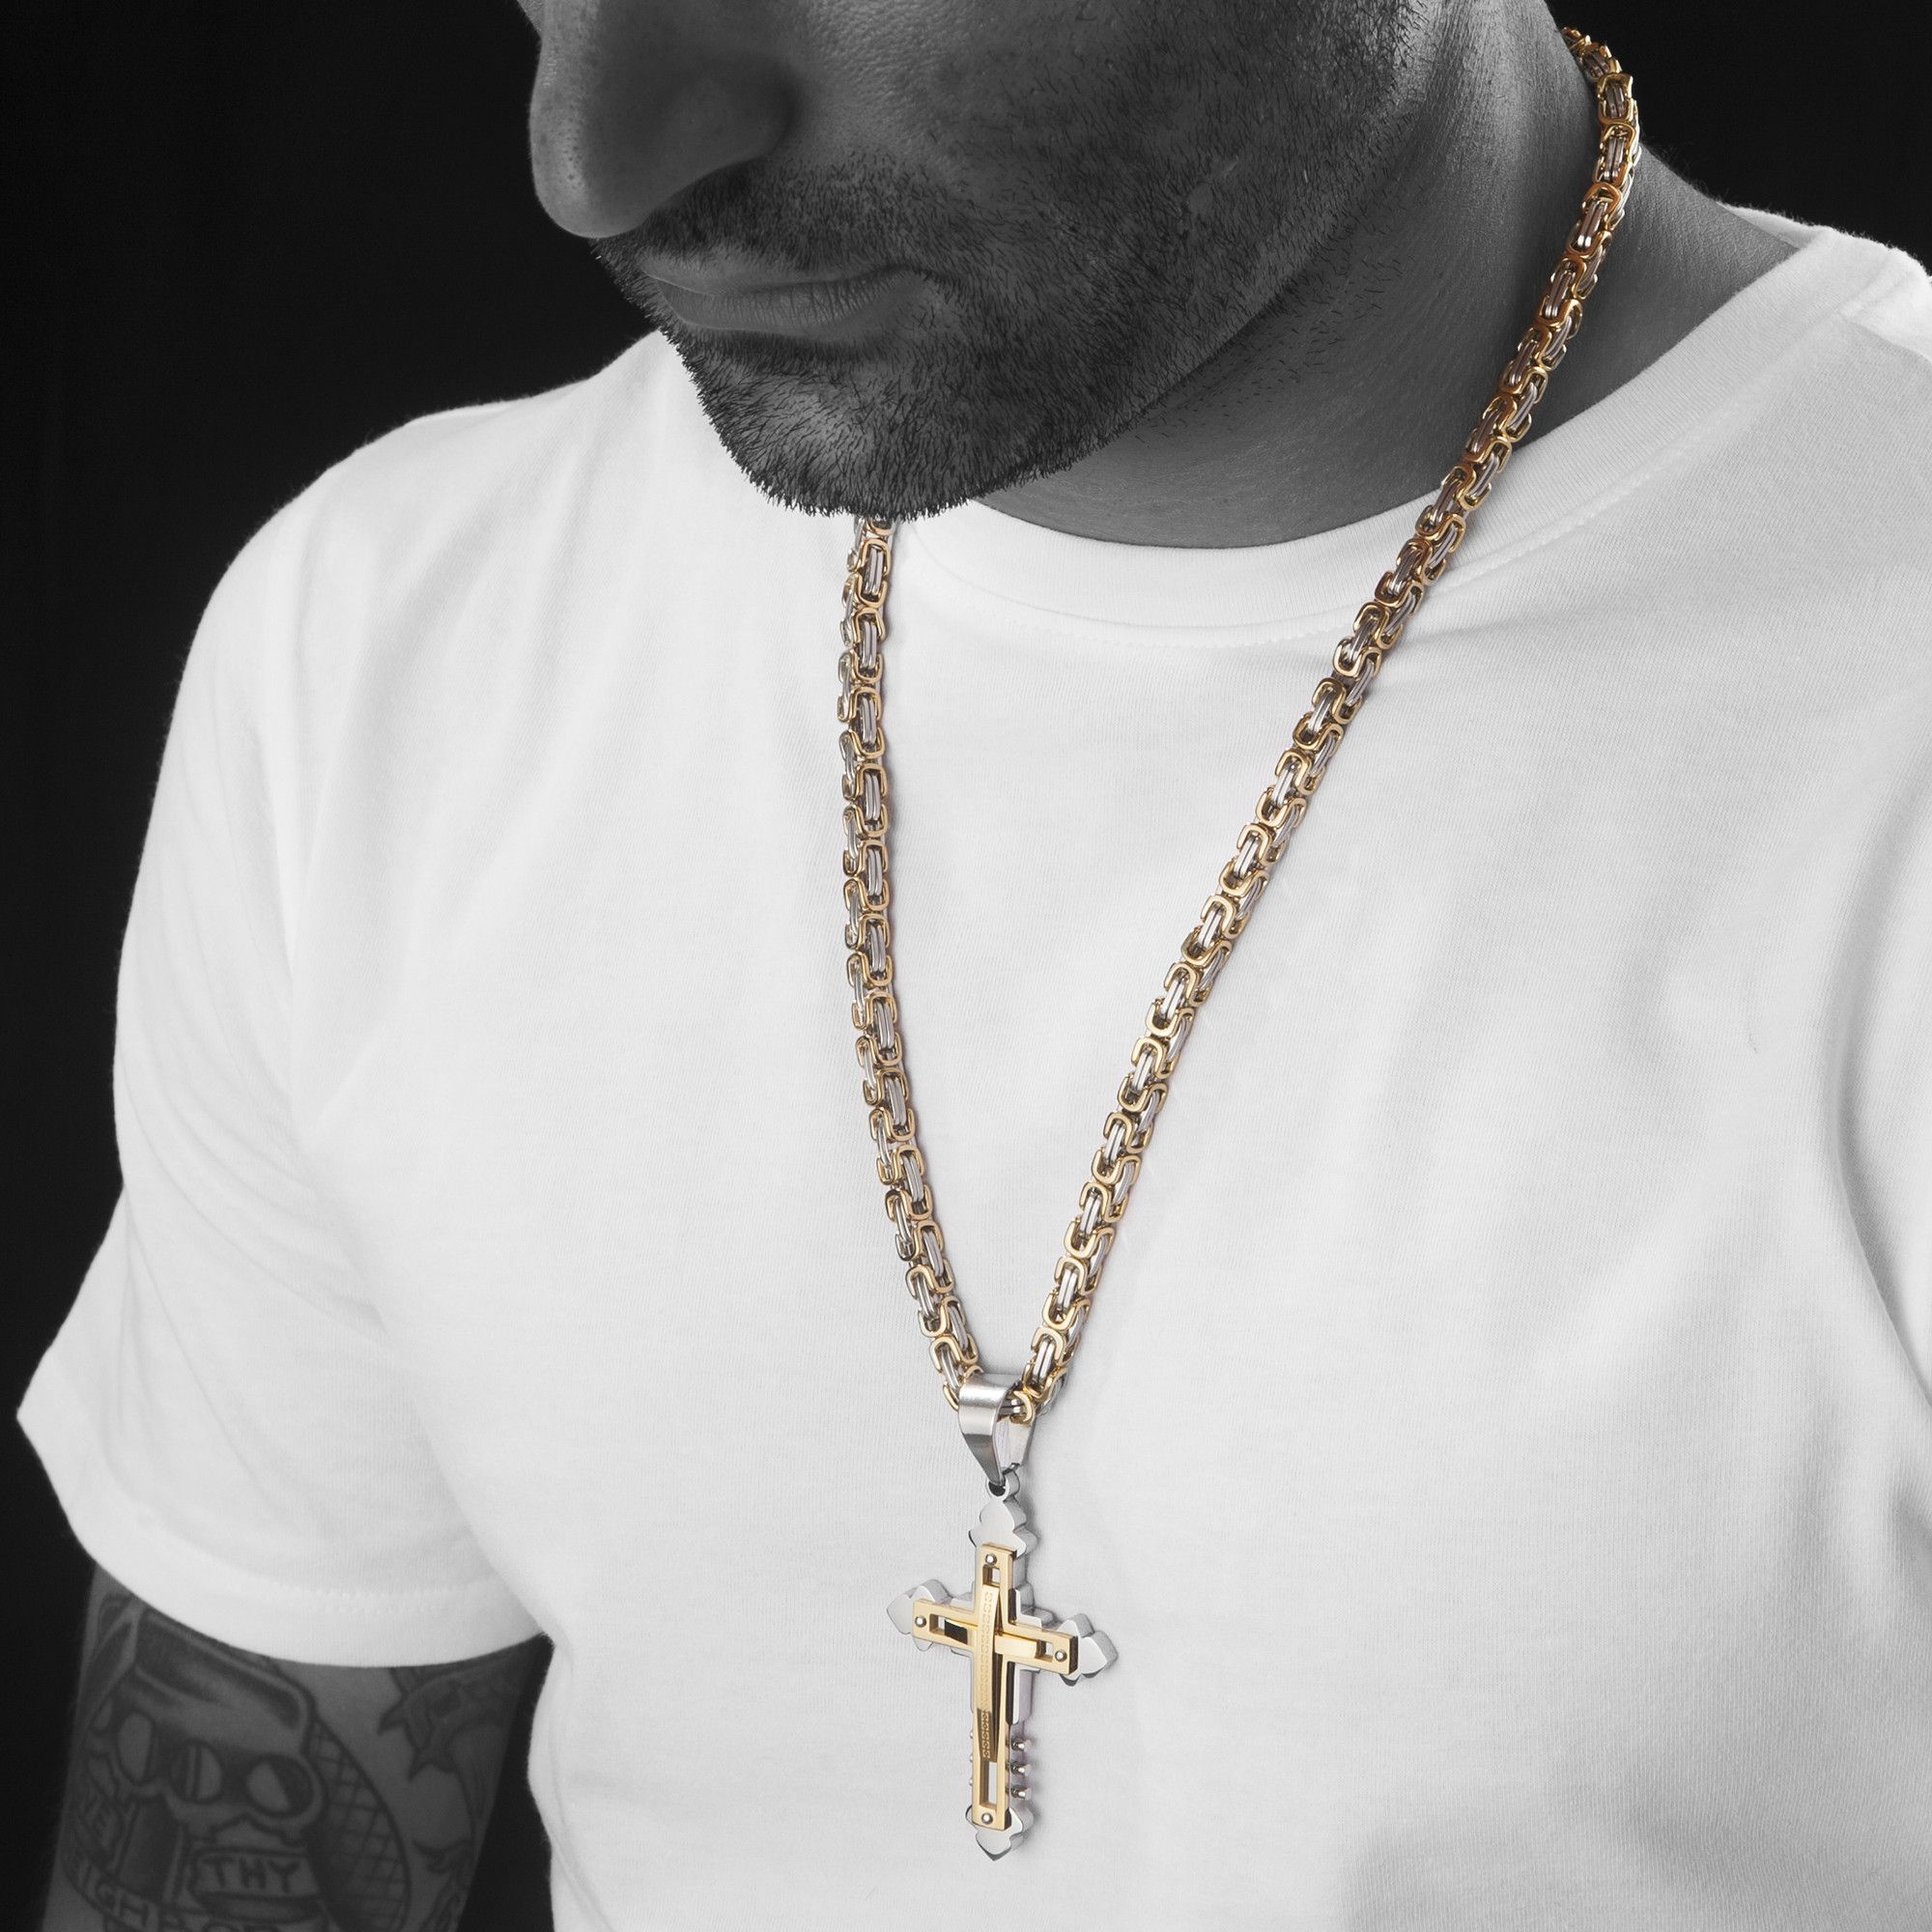 Mens Stainless Steel Gold Silver Byzantine Chain Necklace Cross